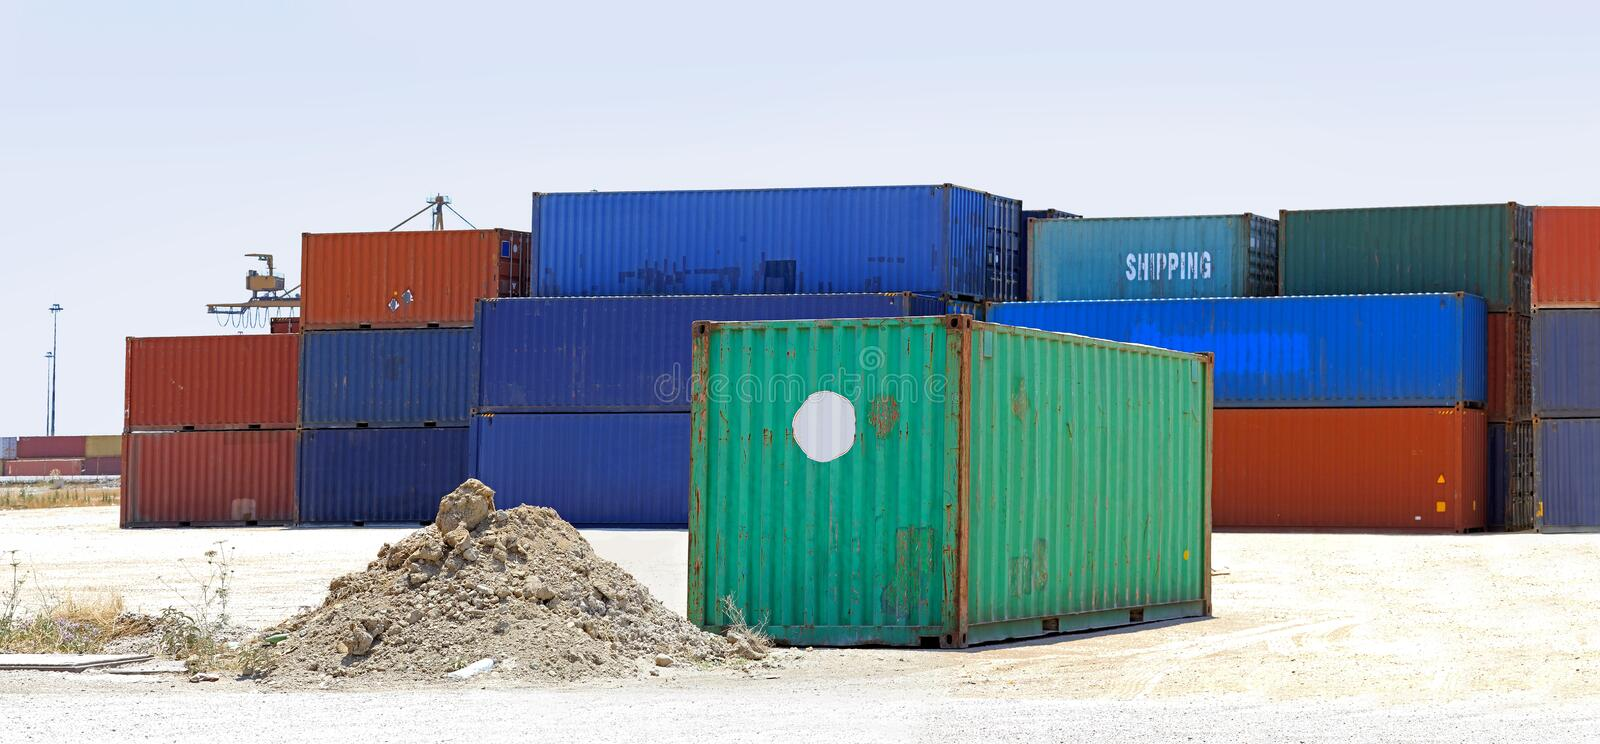 Download Shipping containers stock photo. Image of containers - 25281664